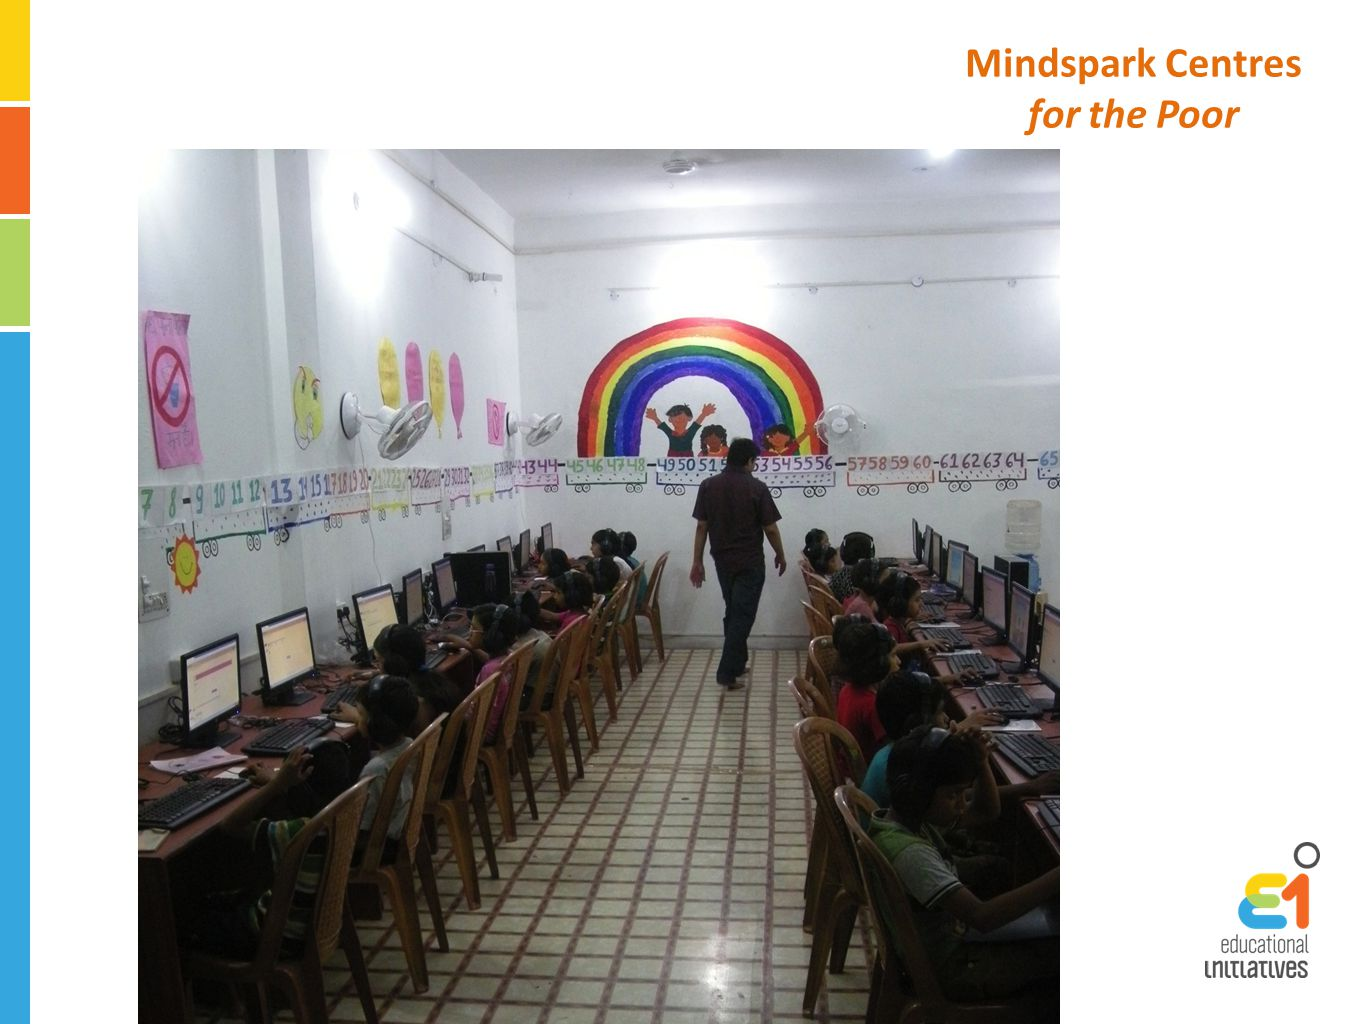 Mindspark Centres for the Poor